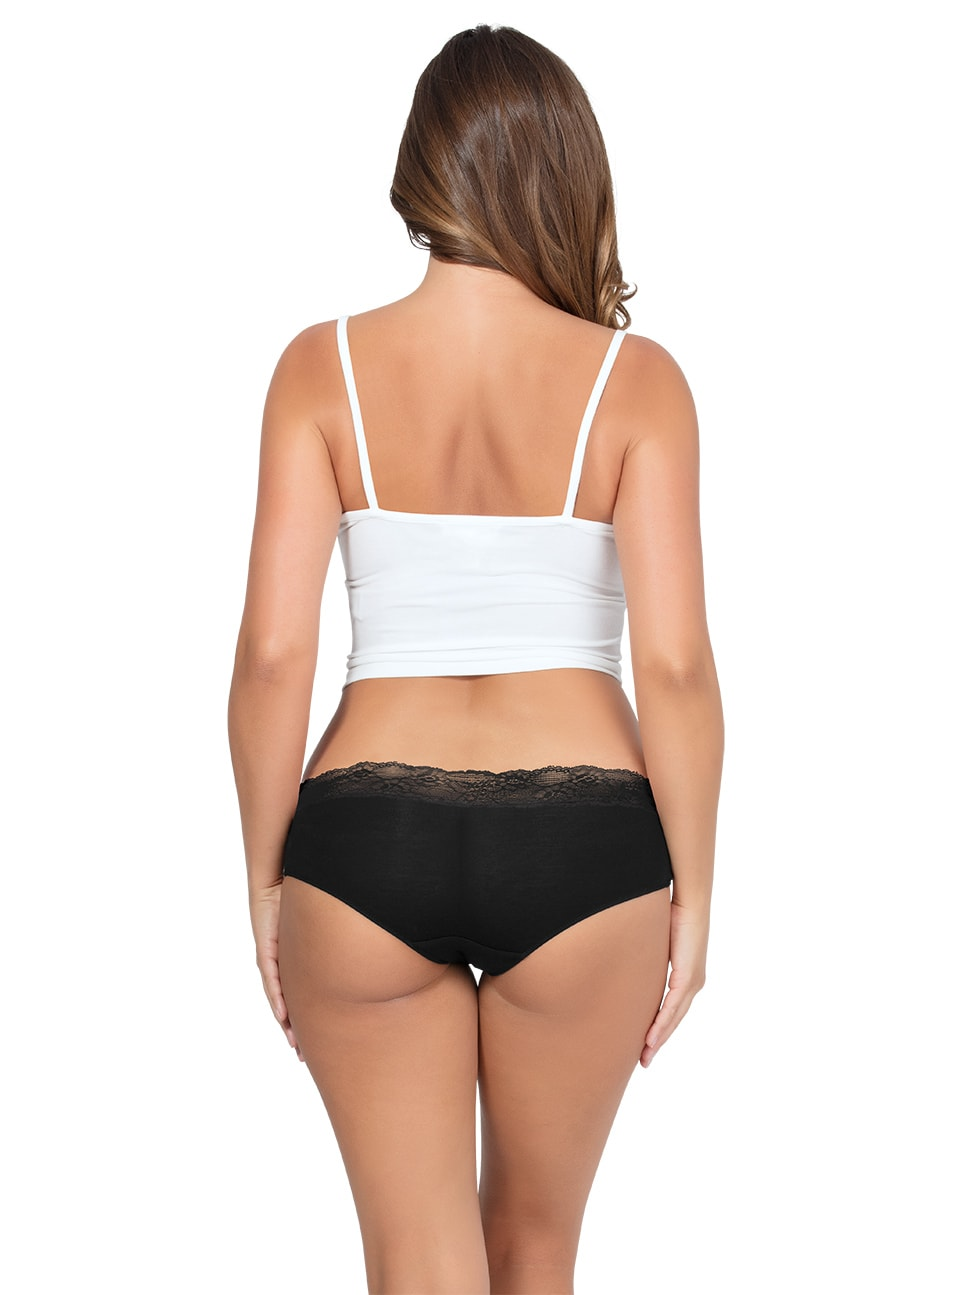 PARFAIT ParfaitPanty SoEssential HipsterPP503 Black Back copy - Panty So Essential Hipster - Black - PP503